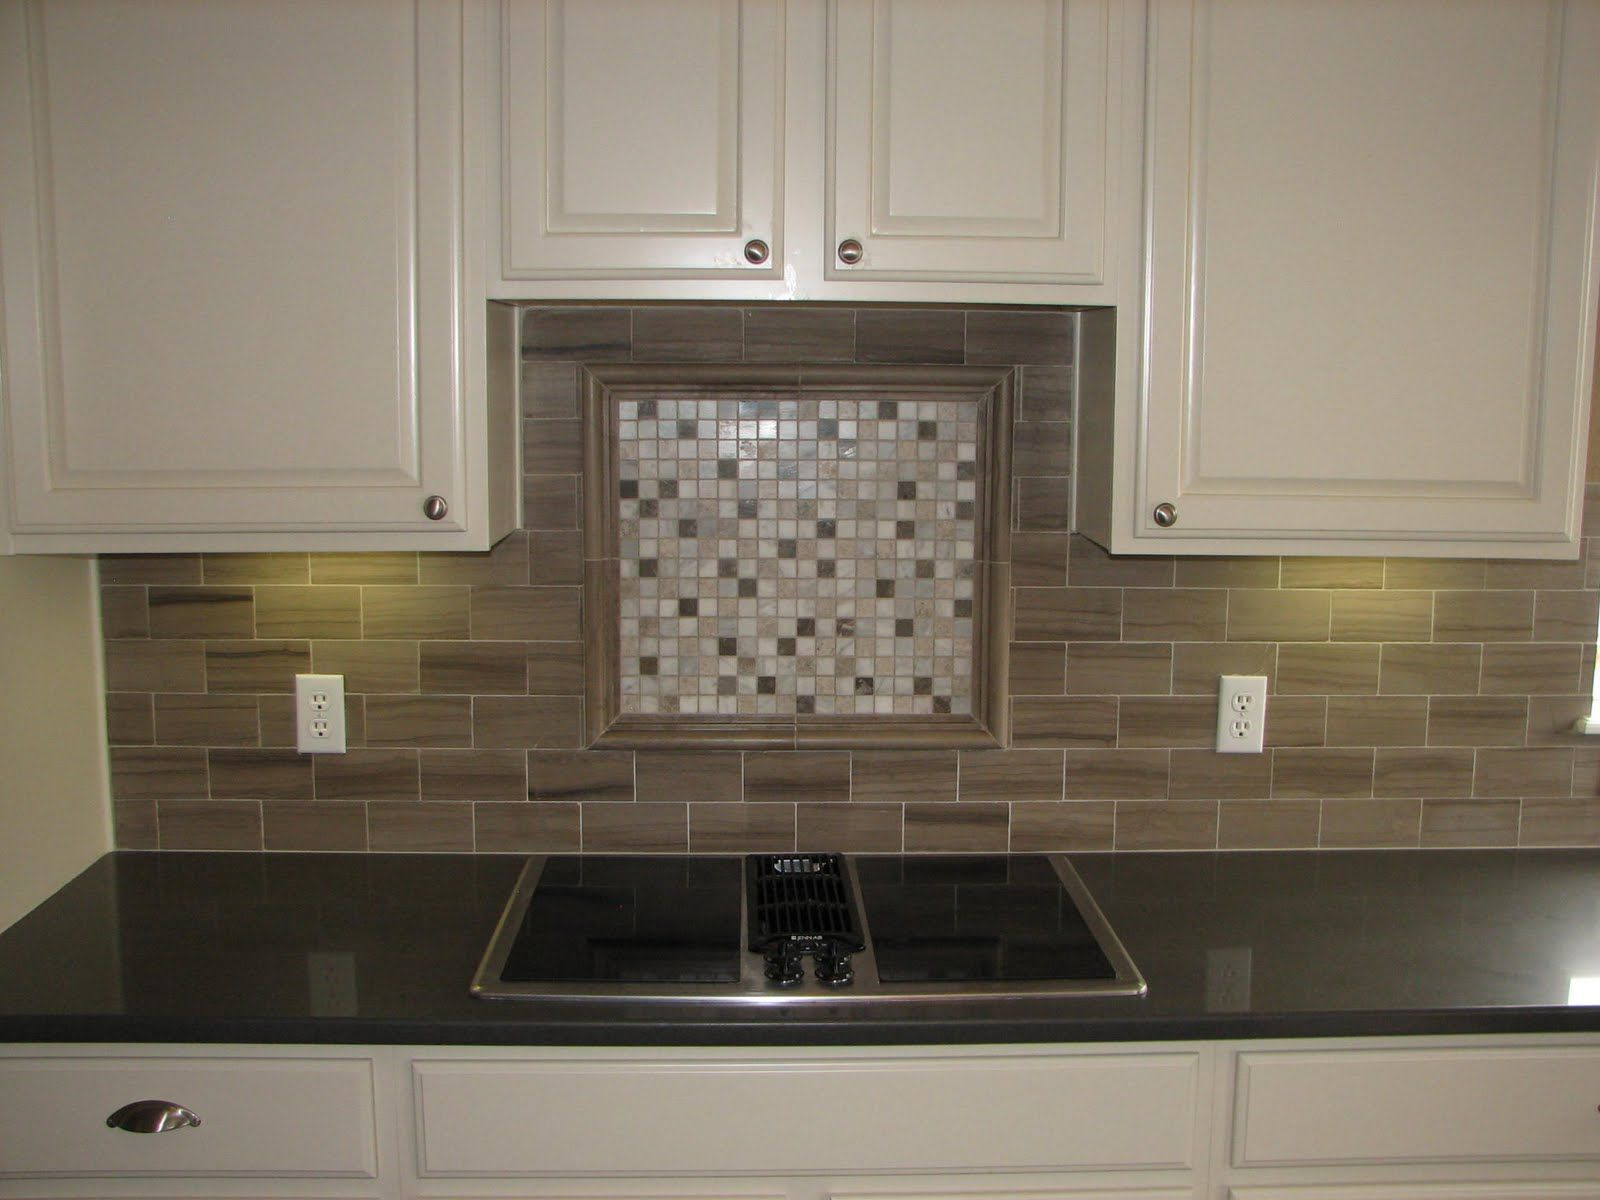 Backsplash Accent Ideas Tile Backsplash With Black Cuntertop Ideas Tile